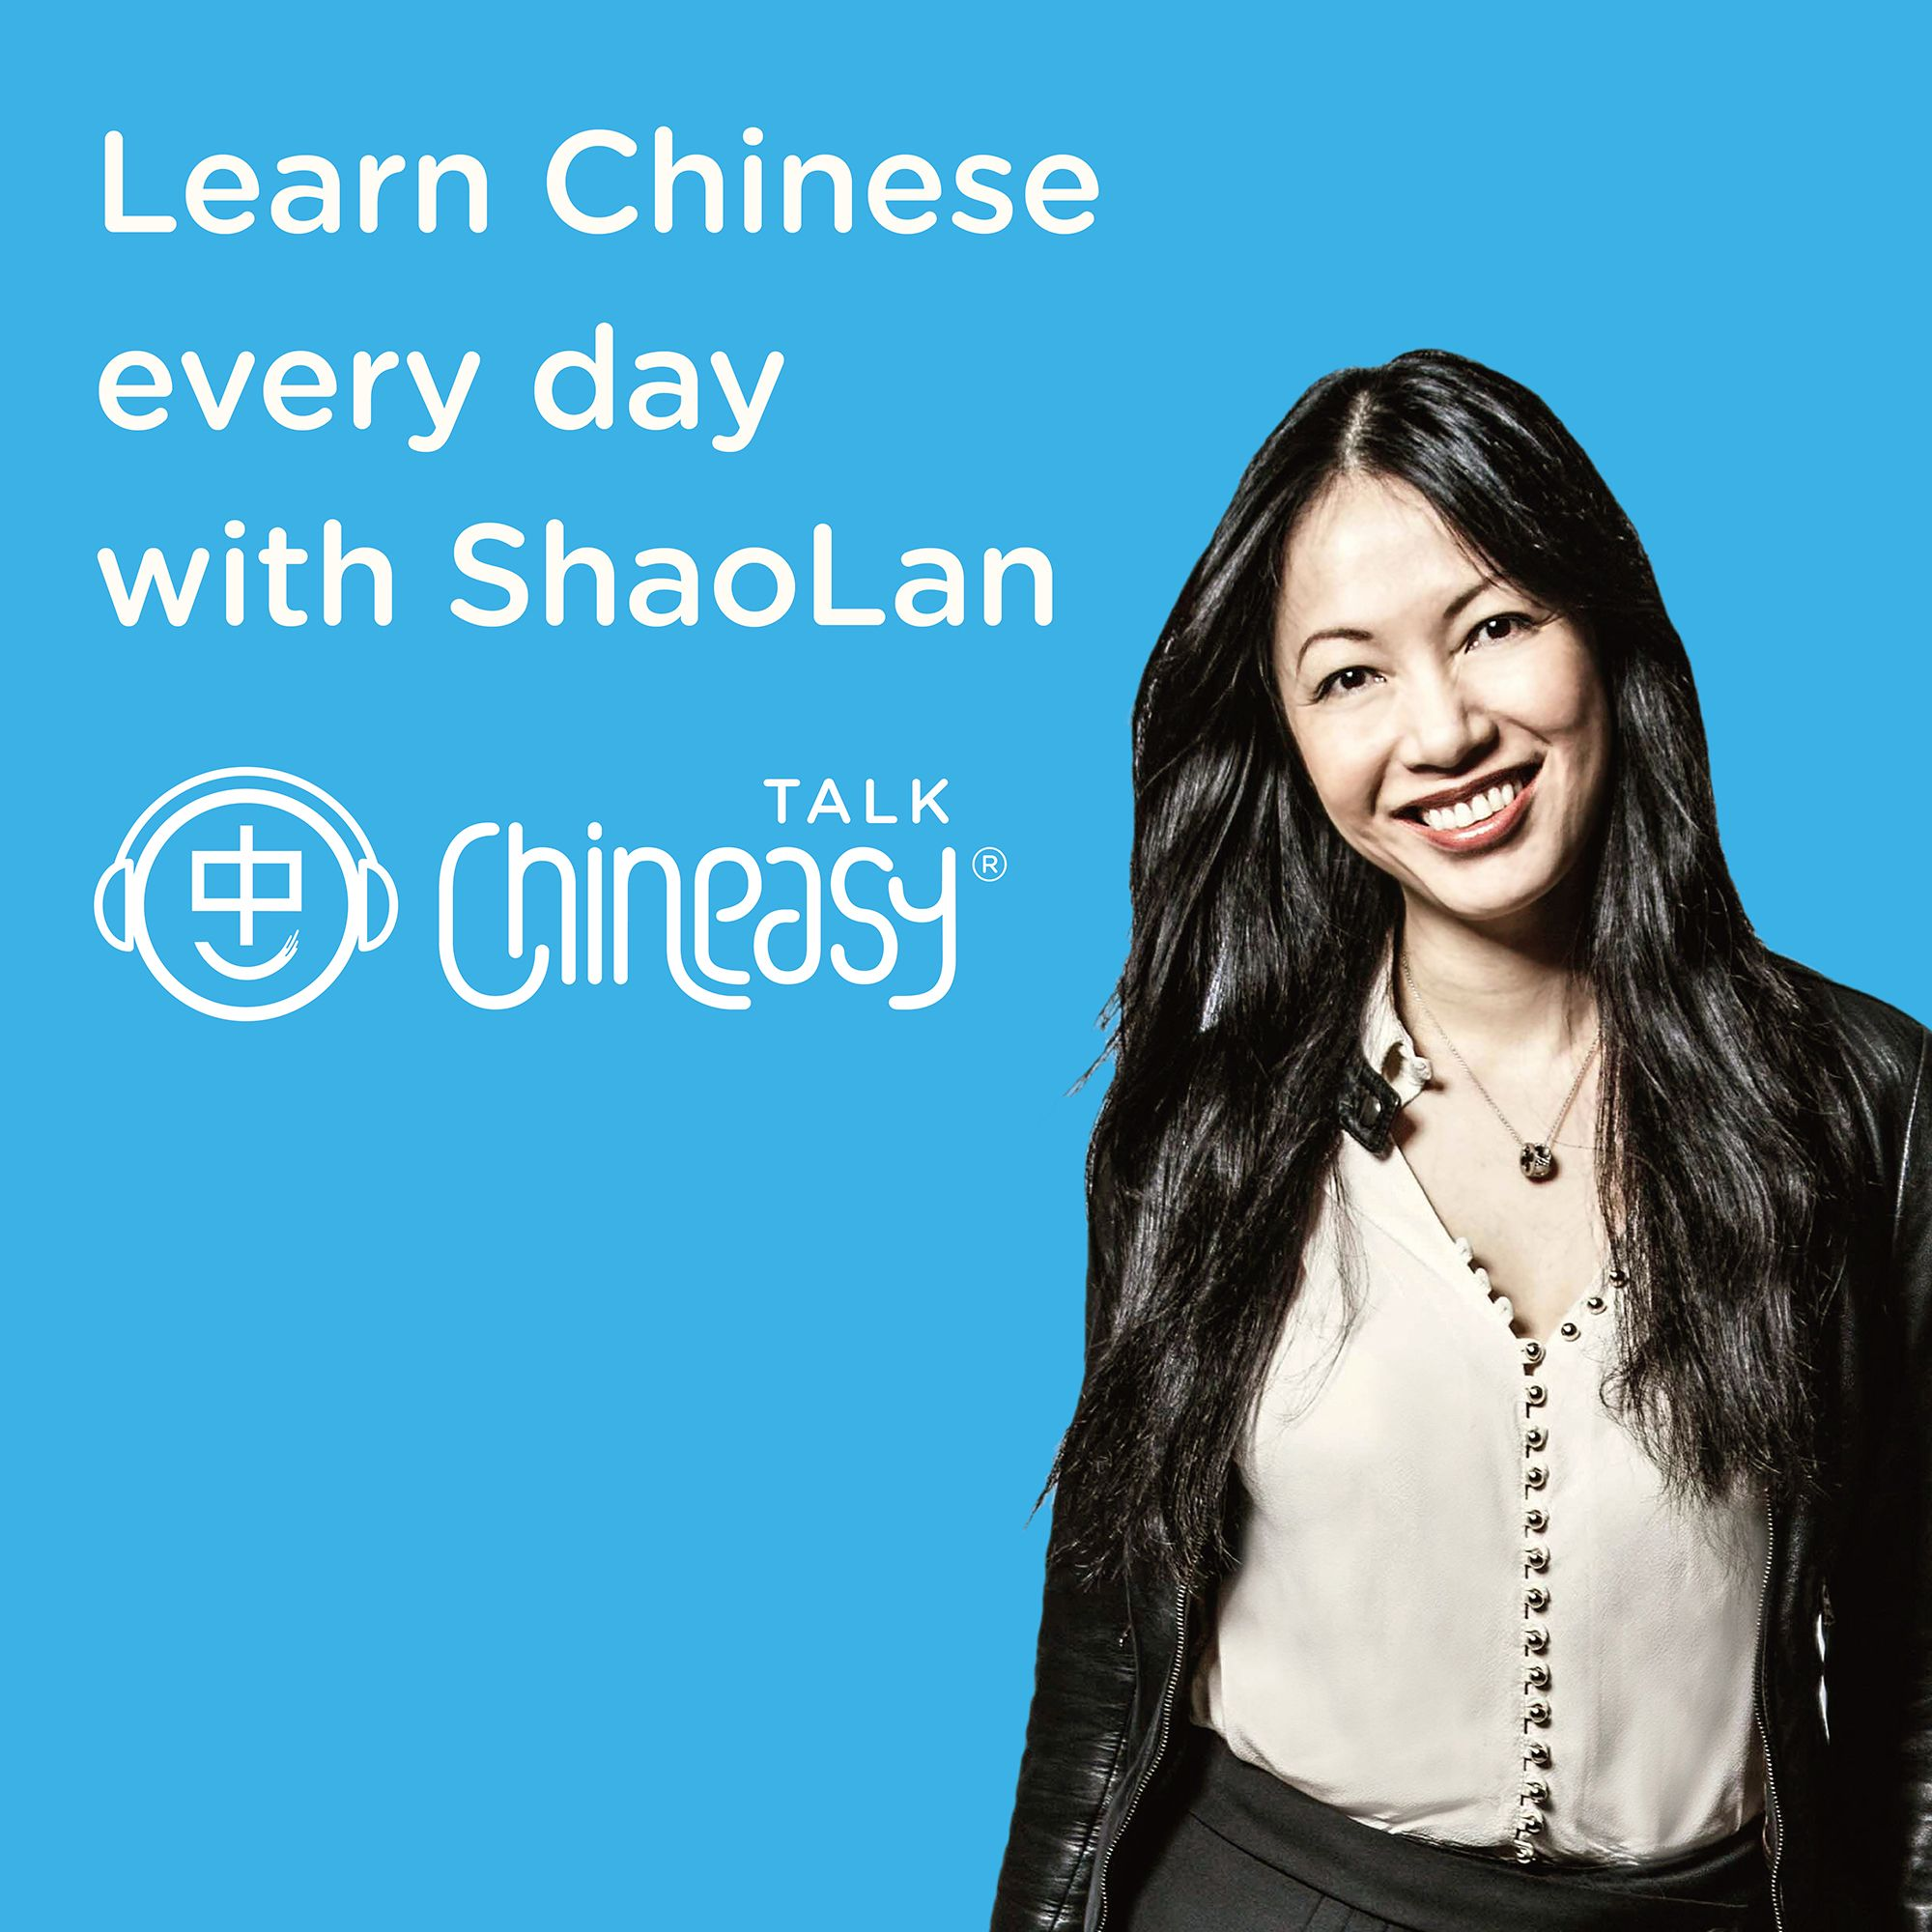 329 - Hurry Up in Chinese w/ ShaoLan & VP of Finance & Strategy Silvia Cruz from EF Education First